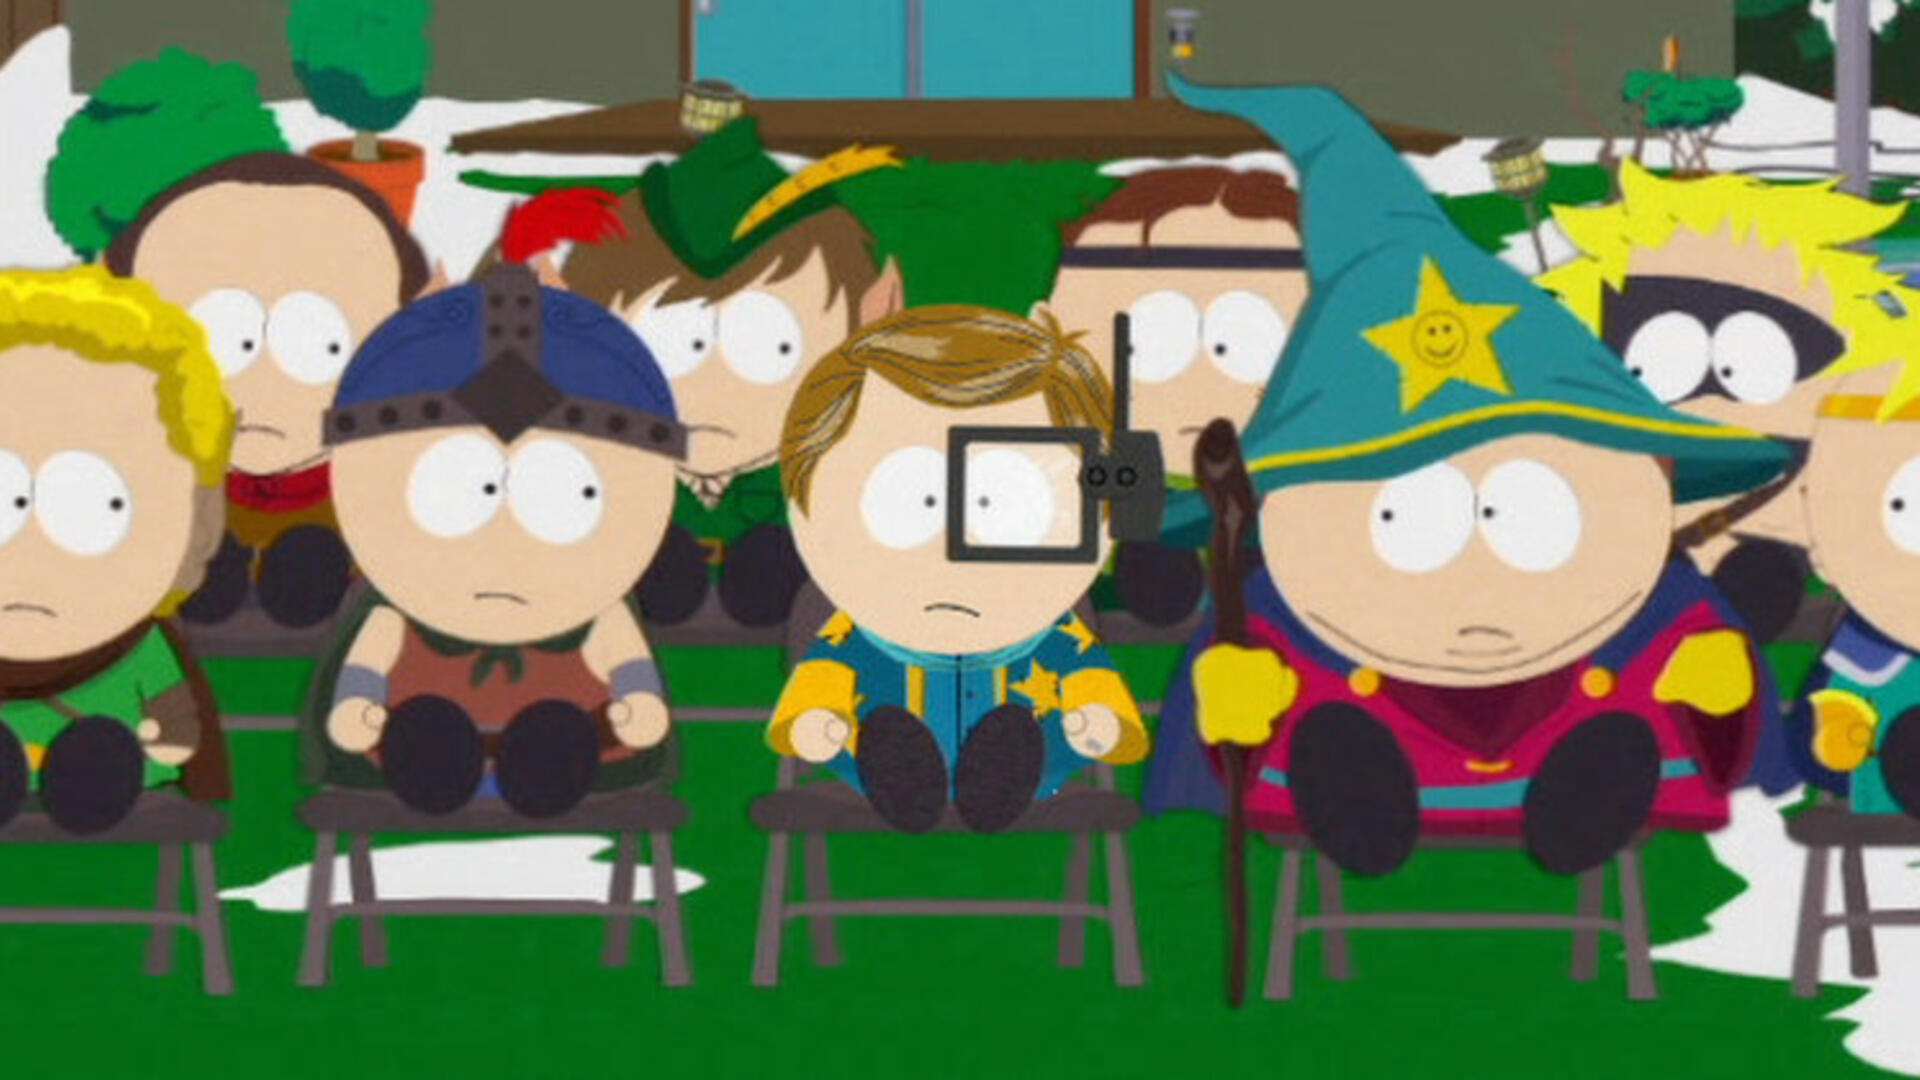 South Park: The Stick of Truth PC Review: Put On Your Robe and Wizard Hat